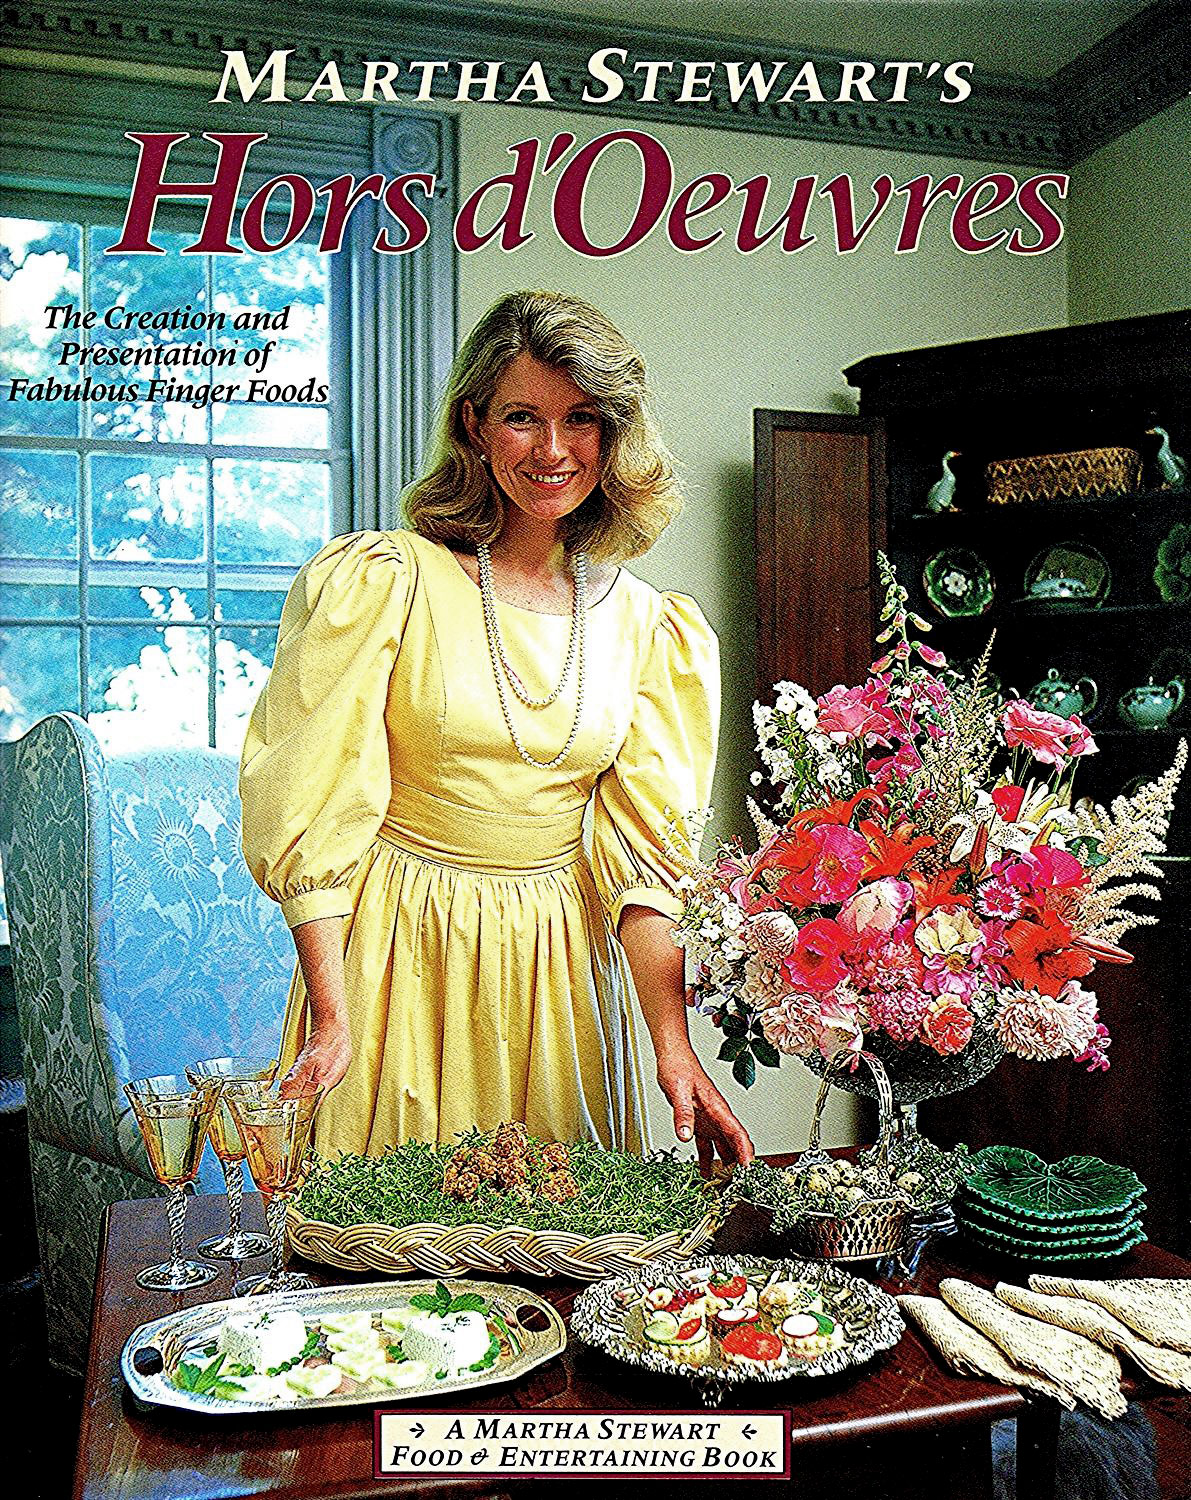 Martha Stewart's Hors D'Oeuvres 1984 book cover